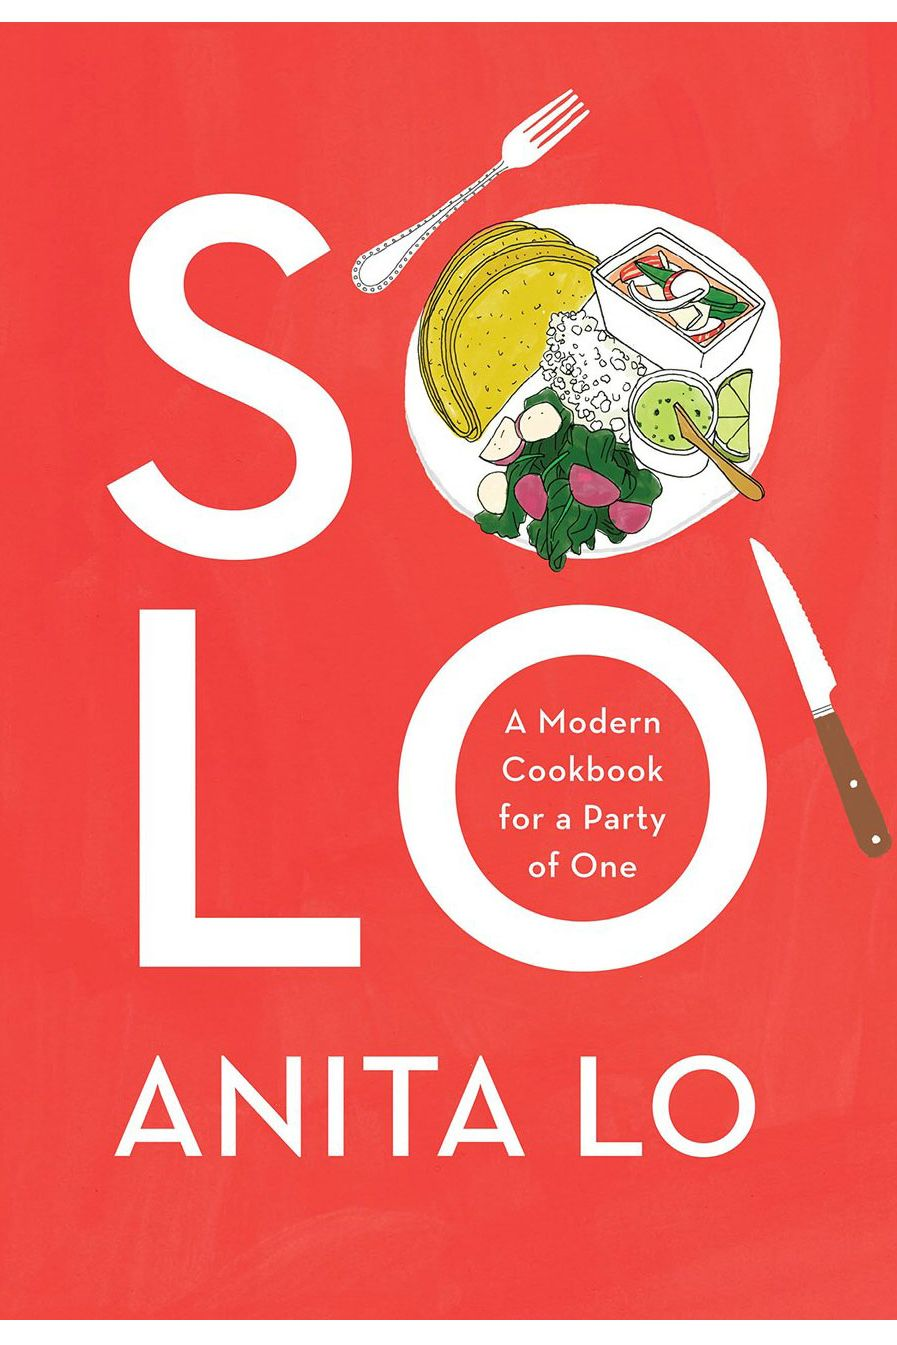 7. <em>Solo: A Modern Cookbook for a Party of One</em>, by Anita Lo